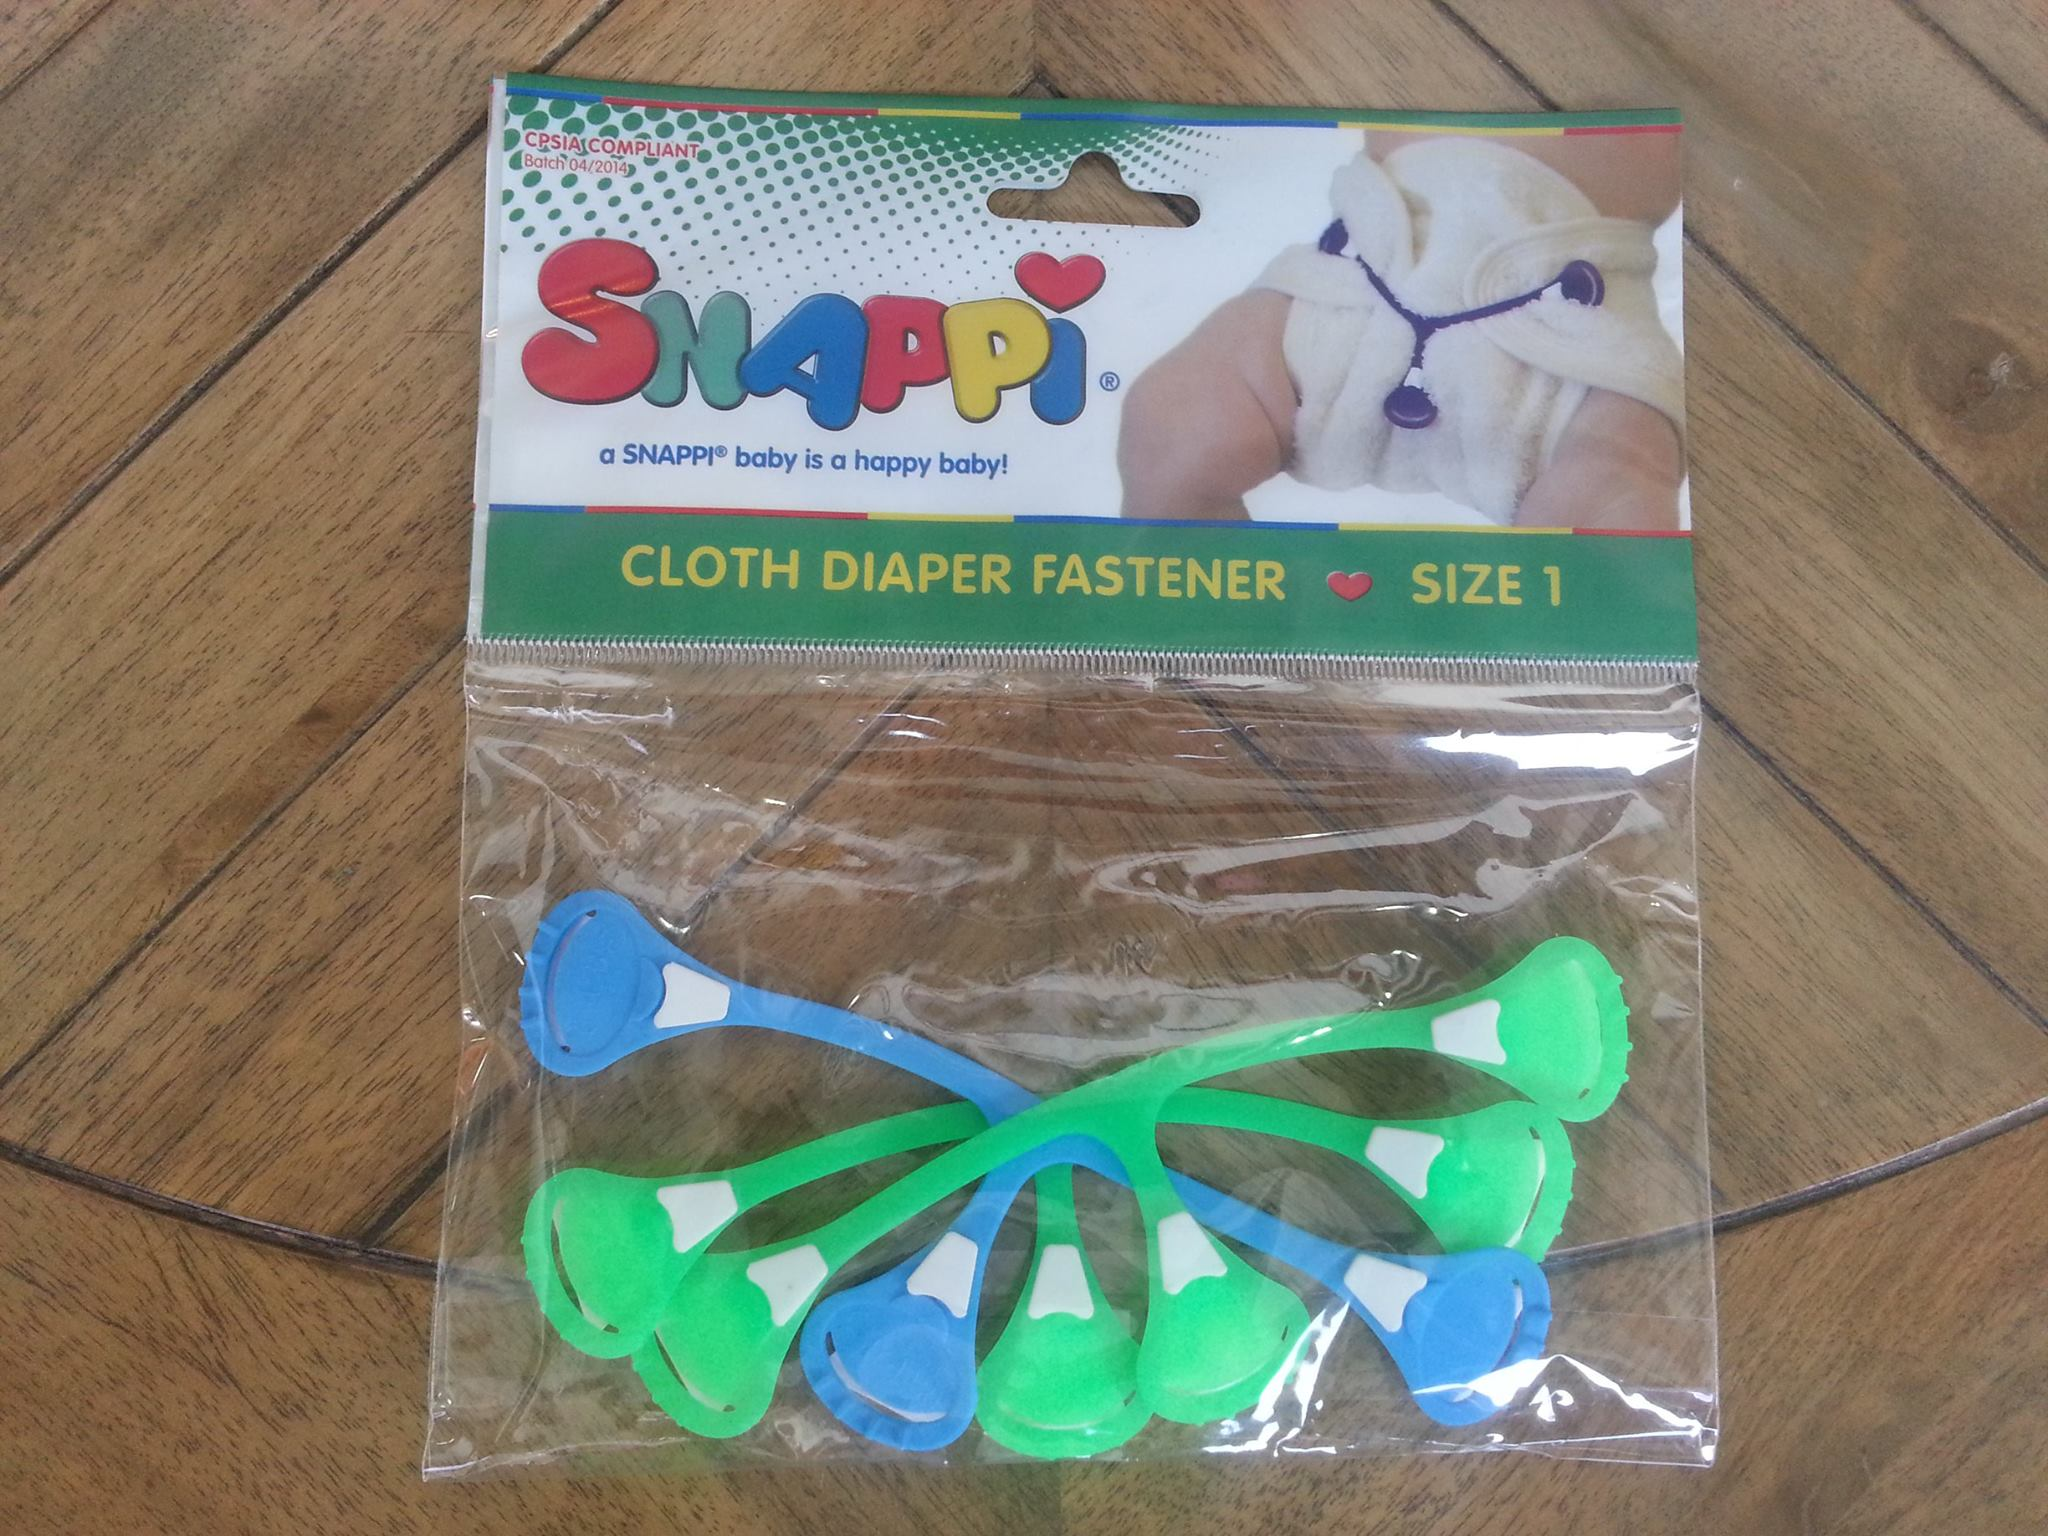 Snappi 3pack Dayglo Green/Dark blue/Dayglo Green